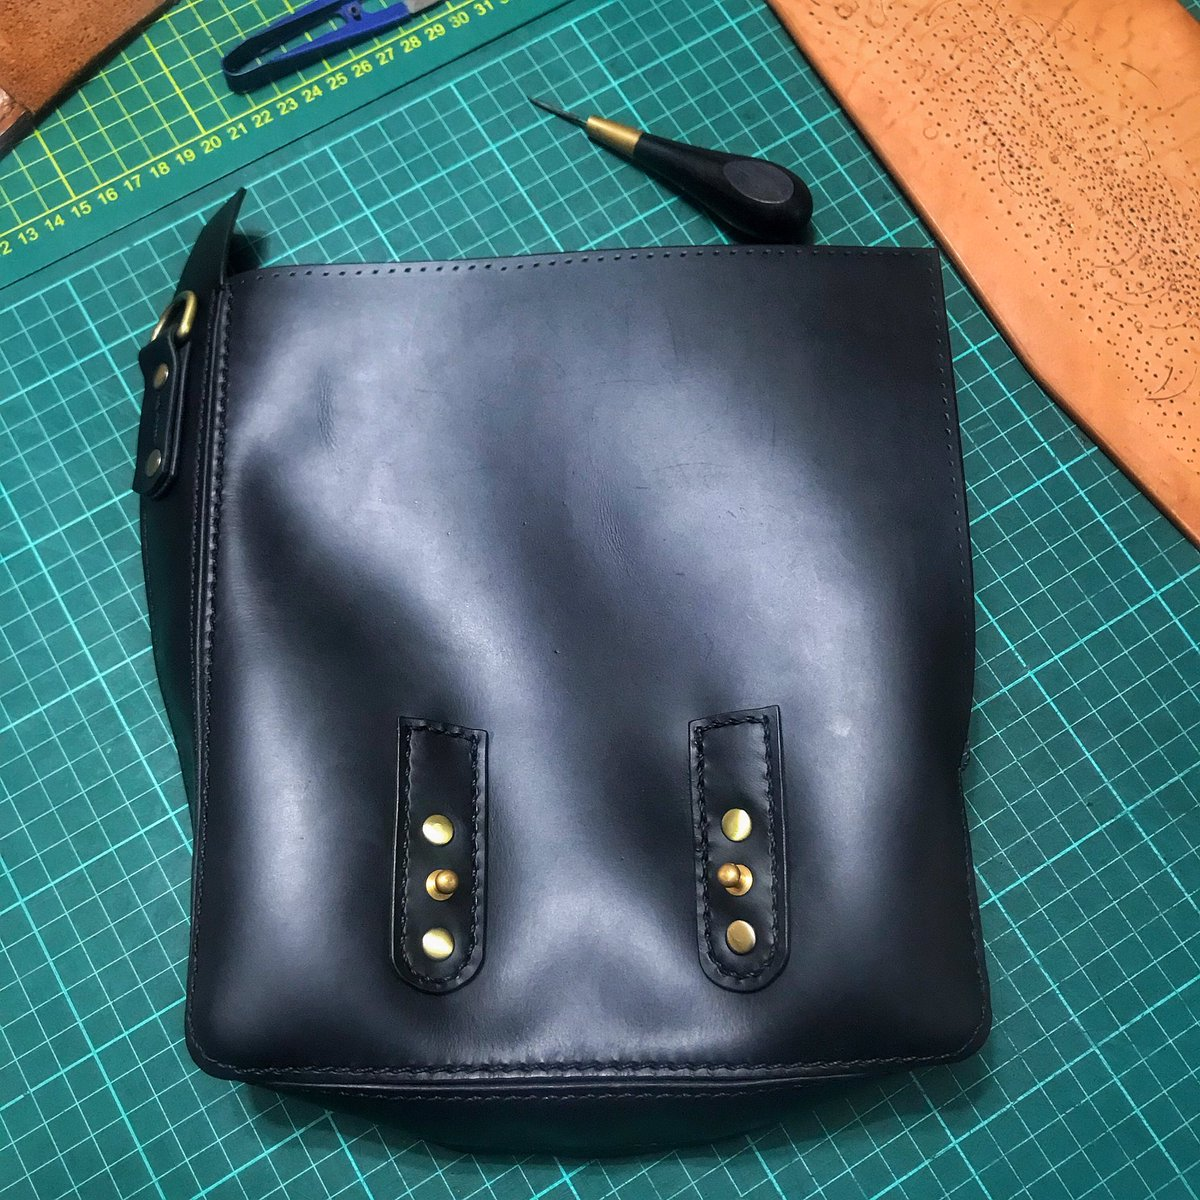 0457eaf5c3 ... #stitching #handstitching #leathercraft #leatherbag #bag #shoulderbag  #morral #cuero #hechoamano #everydaycarry #carryology  pic.twitter.com/kpKKxLUbJO